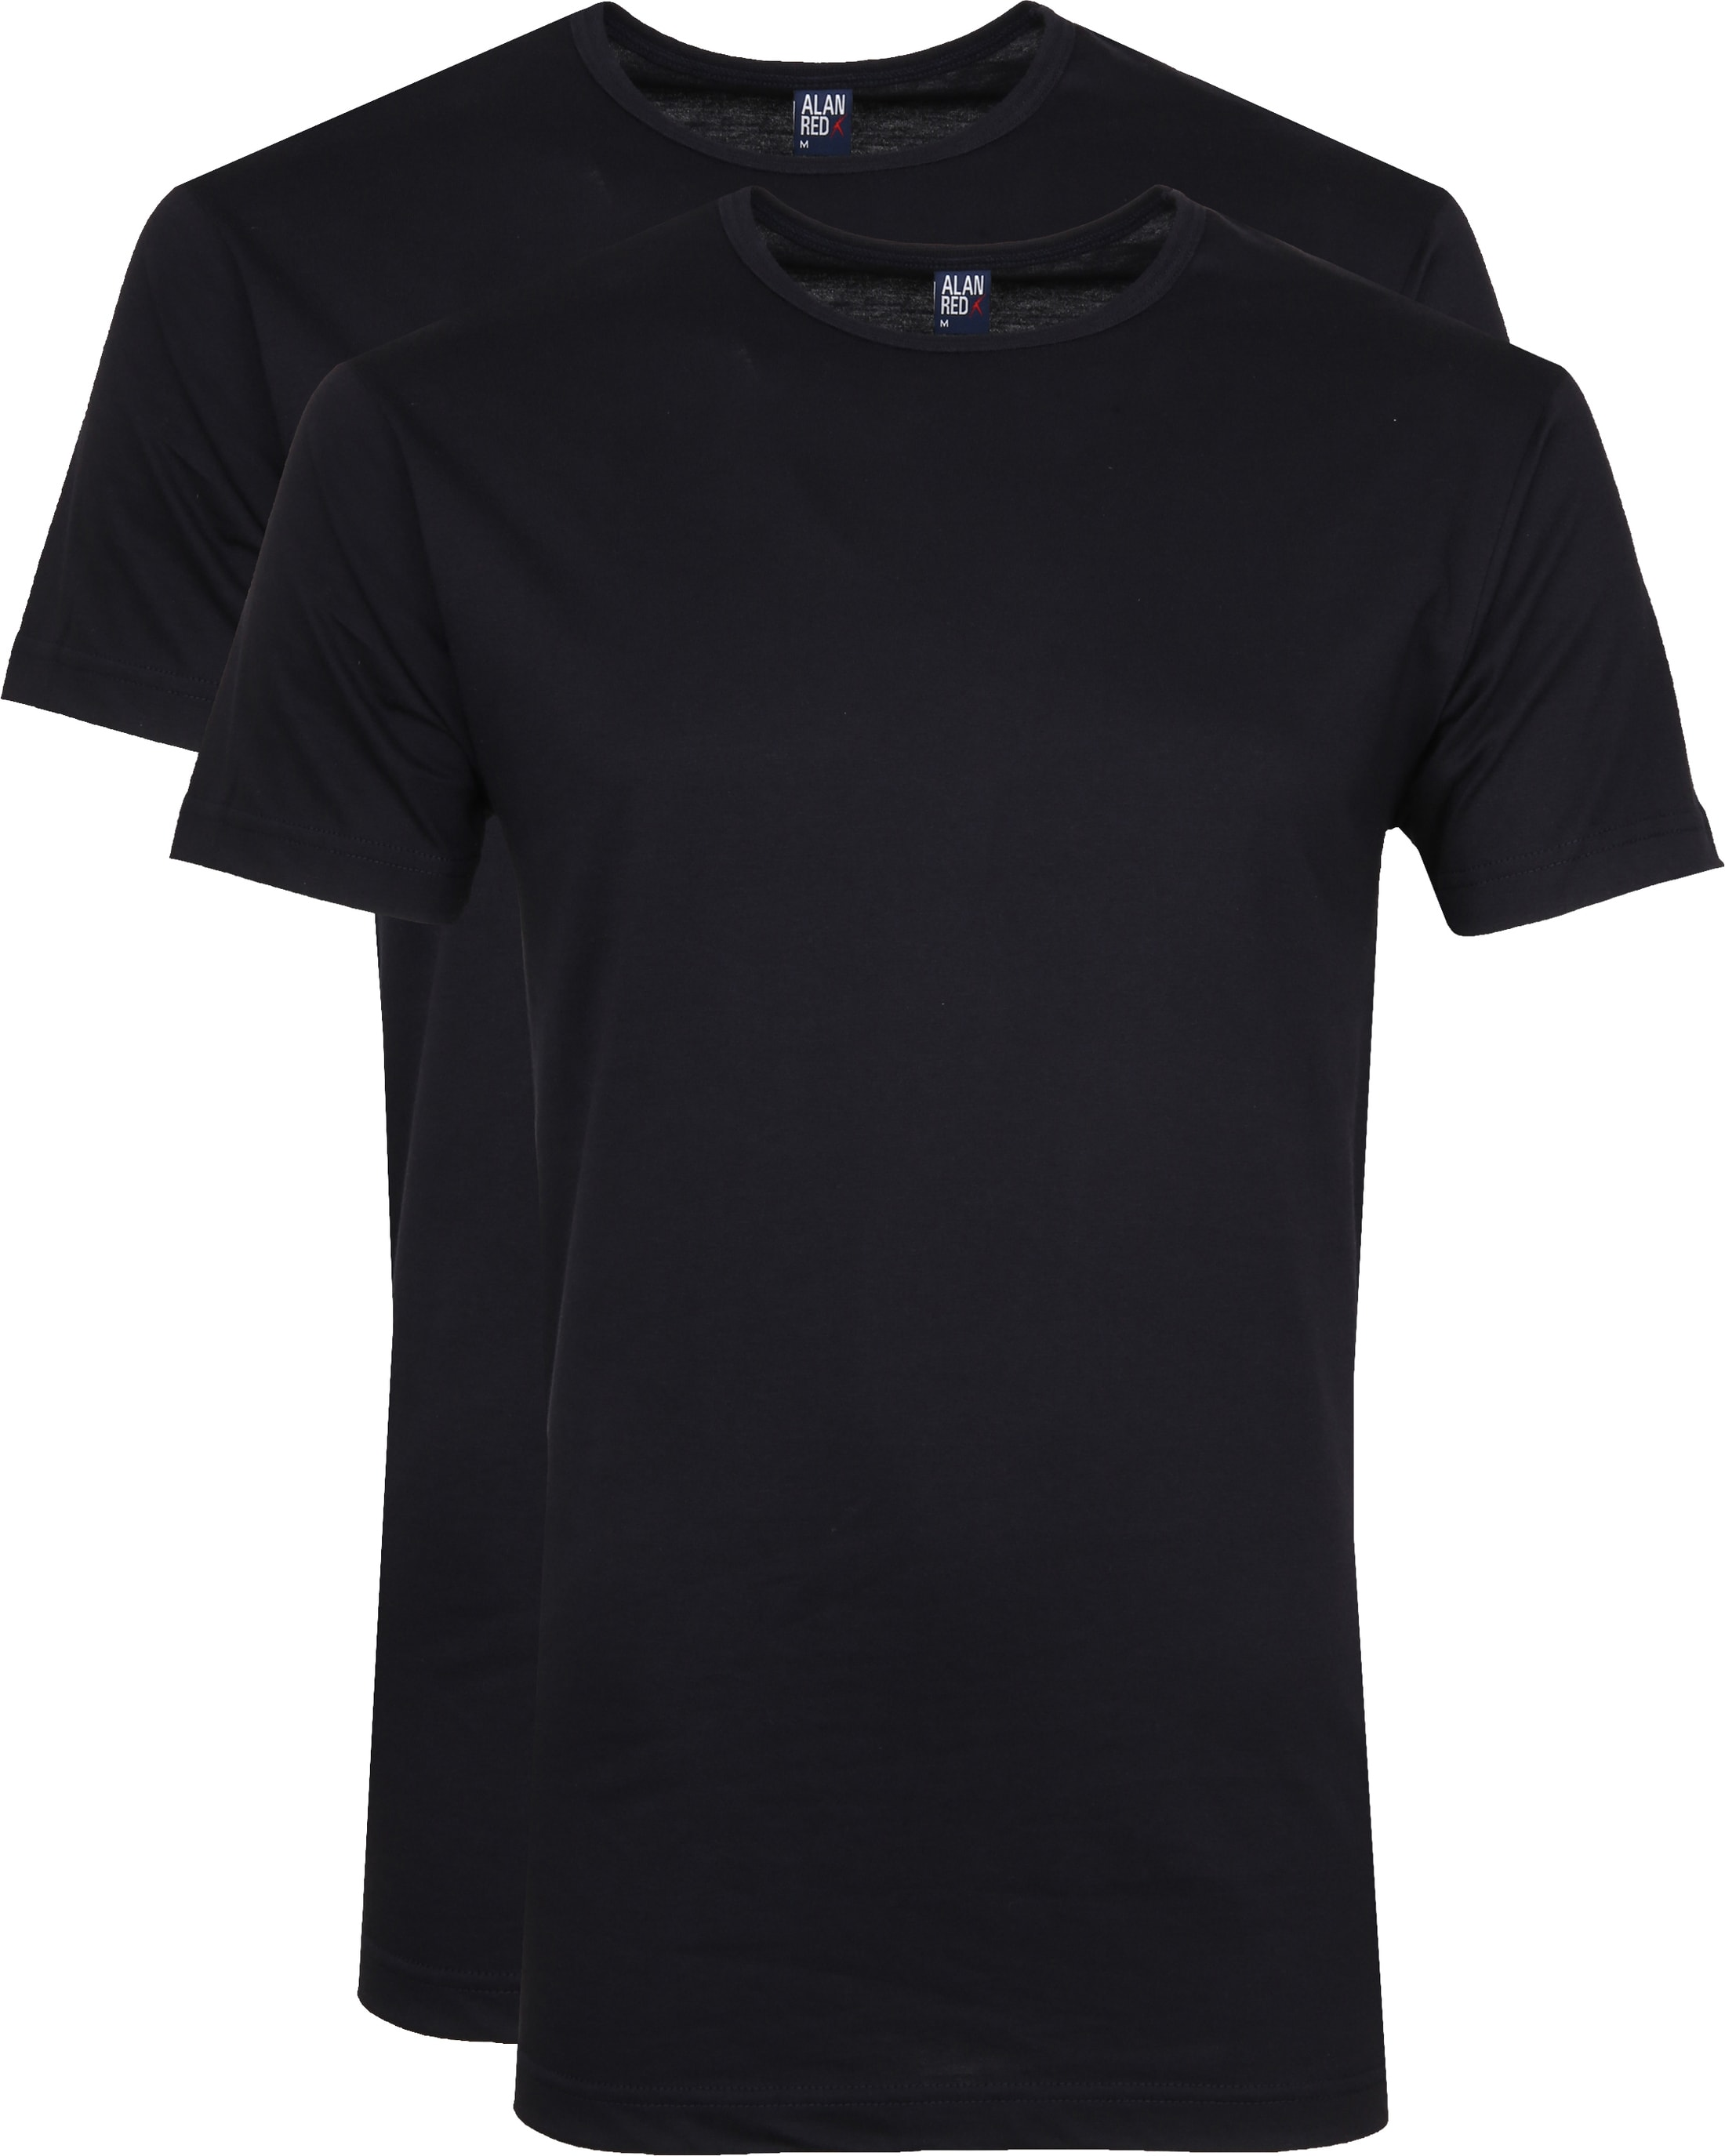 Alan Red Derby R-Neck T-Shirt Navy (2Pack) foto 0